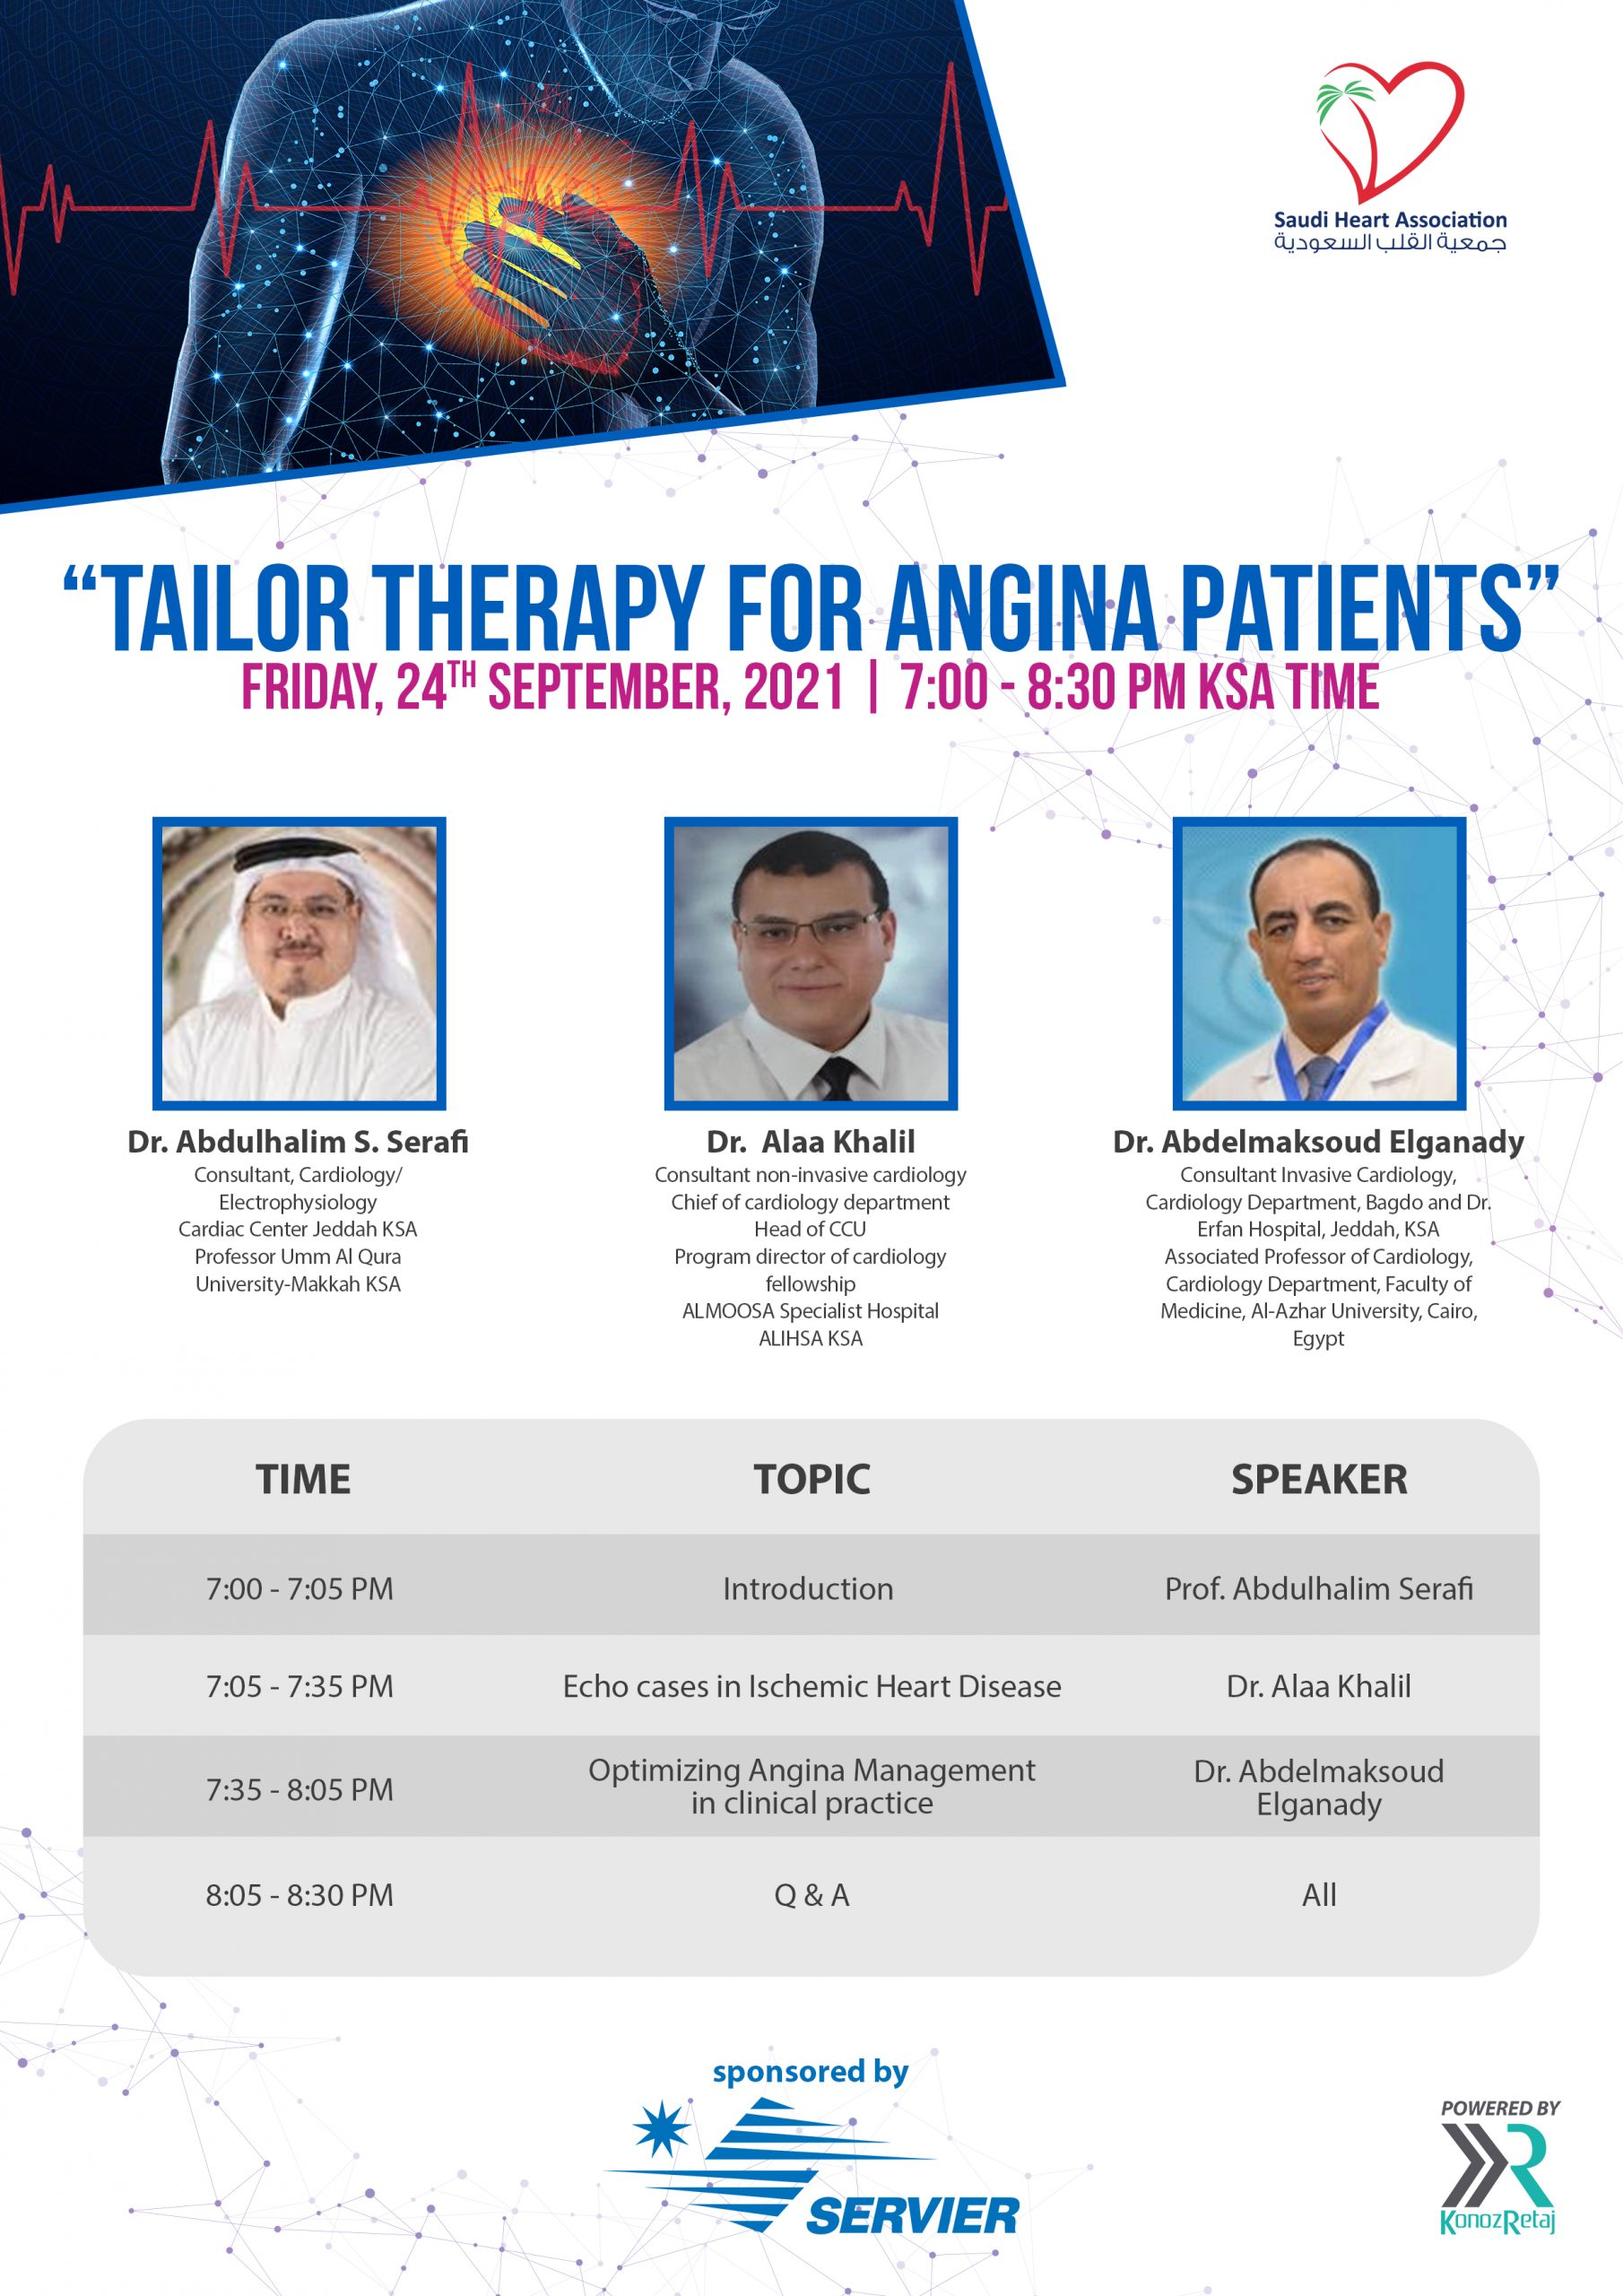 TAILOR THERAPY FOR ANGINA PATIENTS